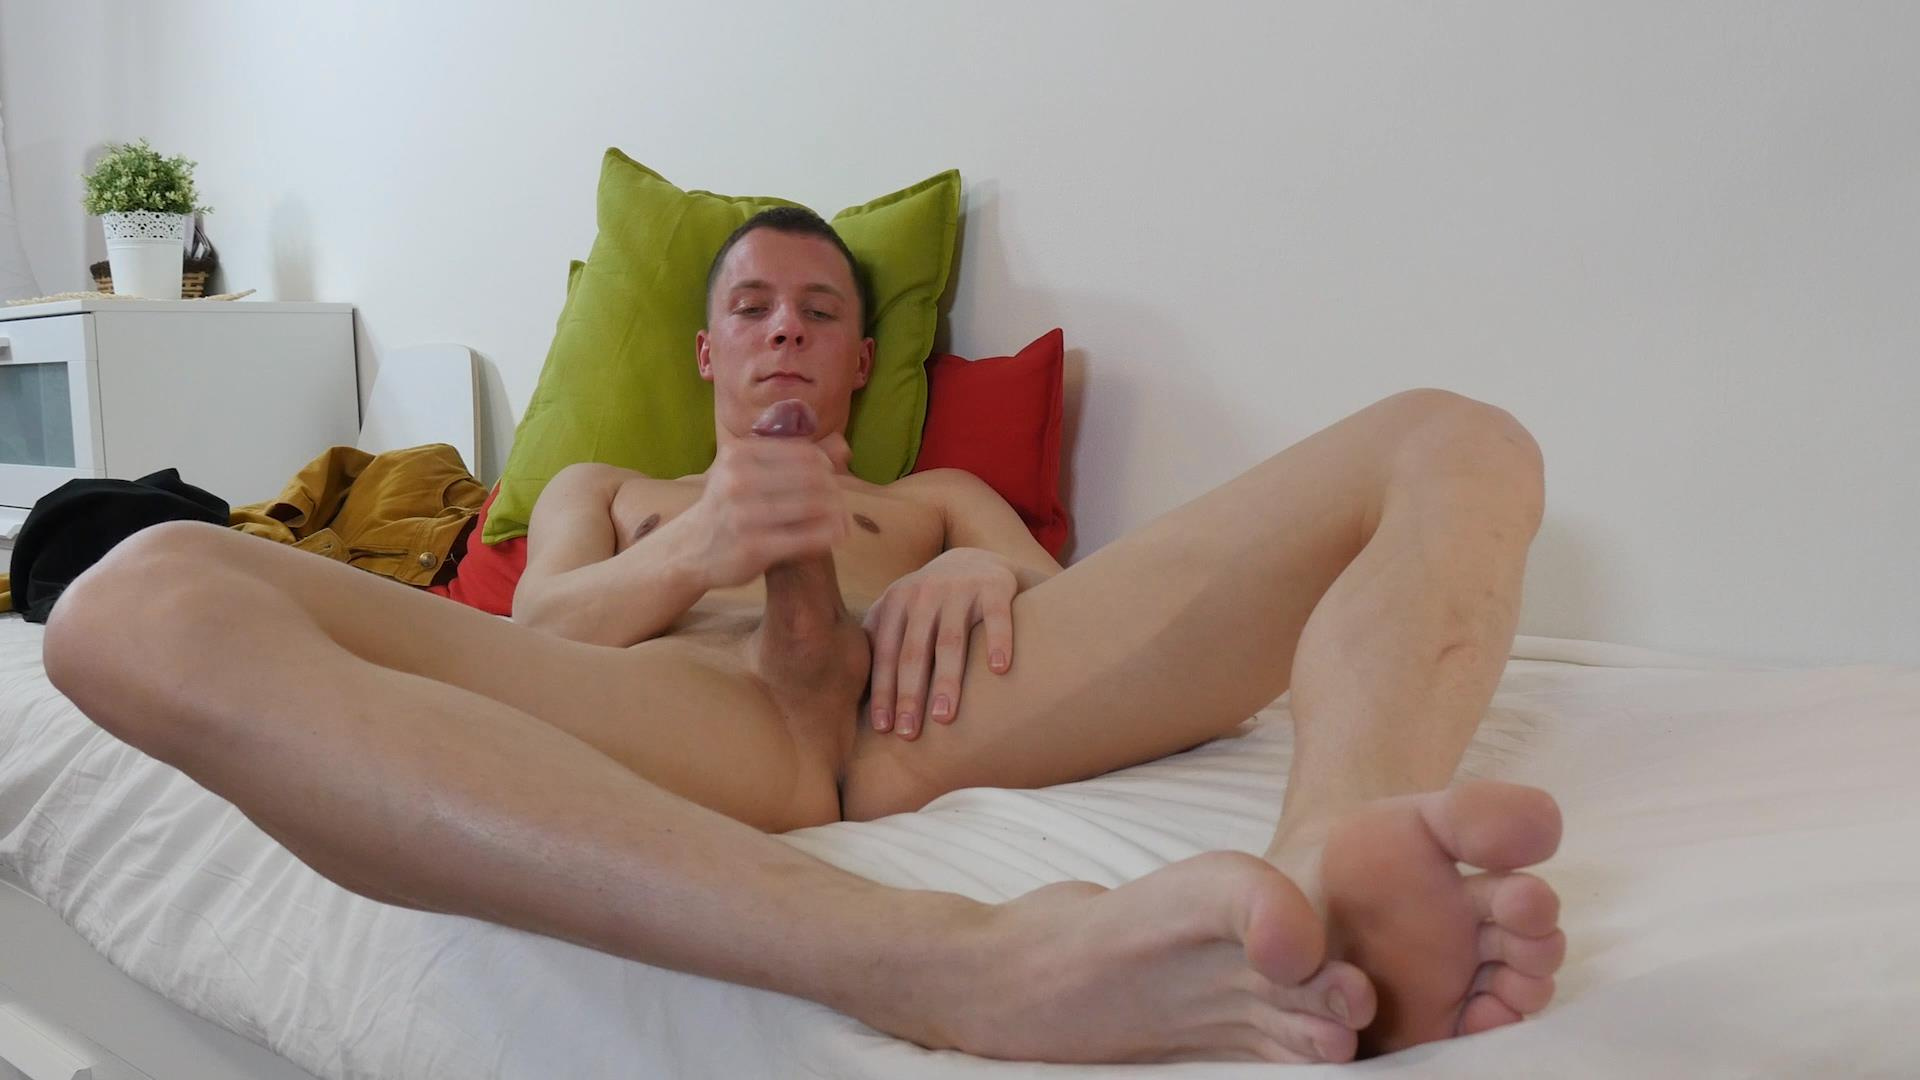 Twink Boys Party Andrew Kitt Twink With Big Uncut Cock Masturbation Amateur Gay Porn 14 Twink Andrew Kitt Rubbing A Load Out Of His Big Uncut Cock